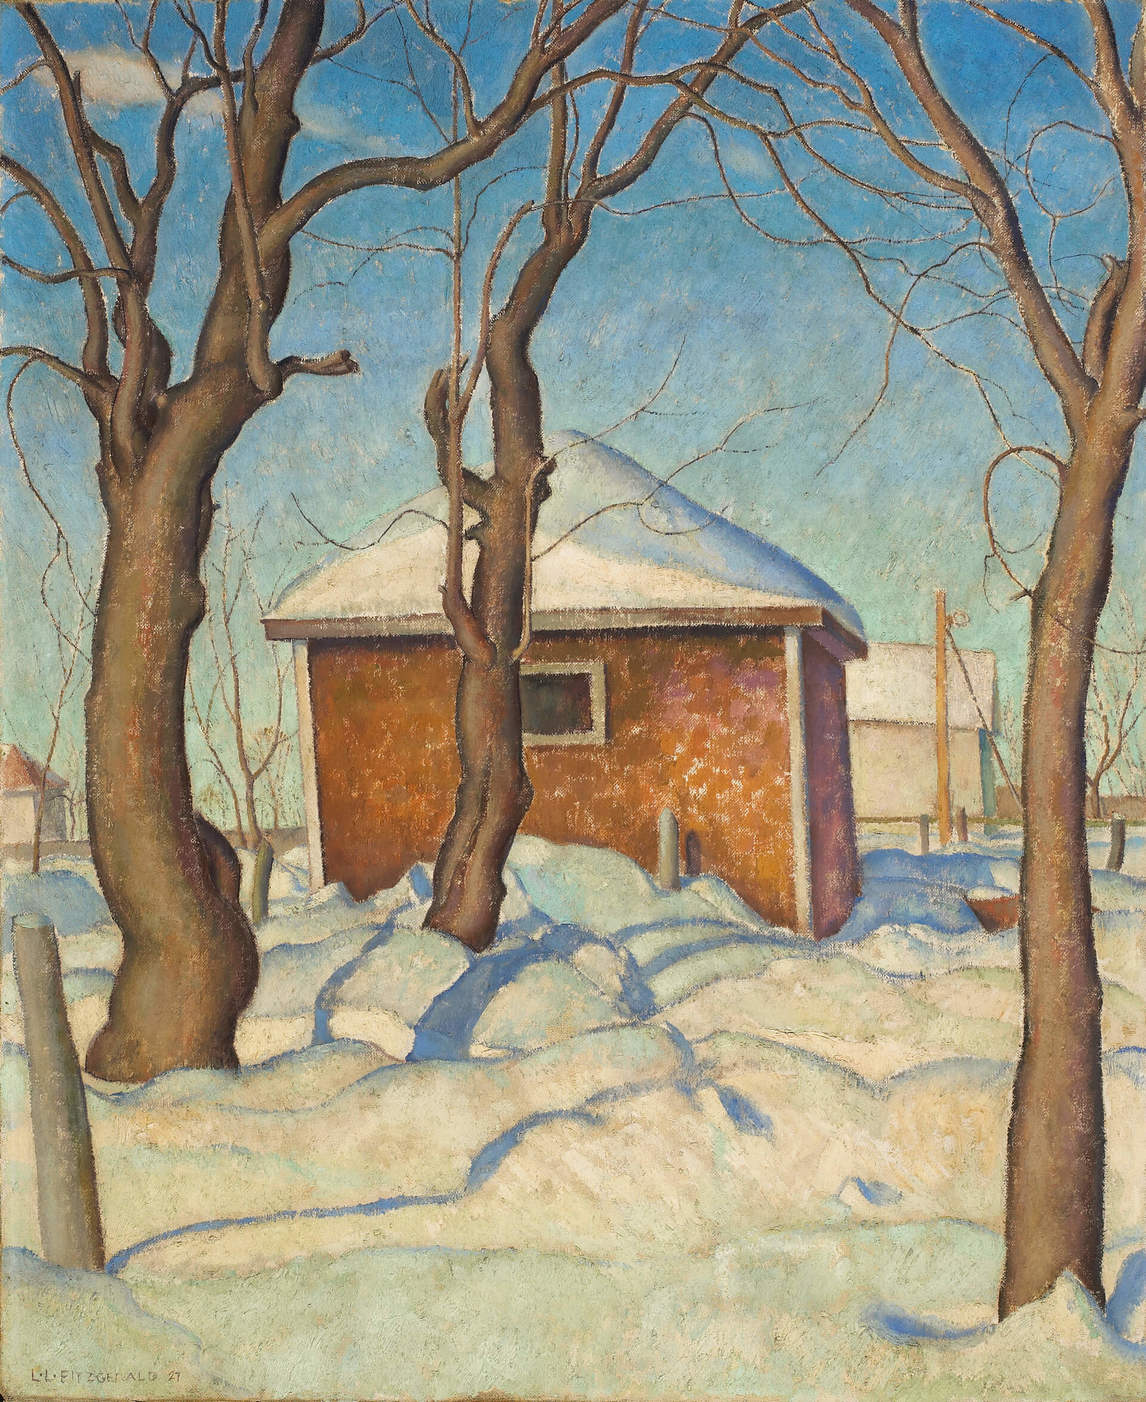 Art Canada Institute, Lionel LeMoine Fitzgerald, Williamson's Garage, 1927